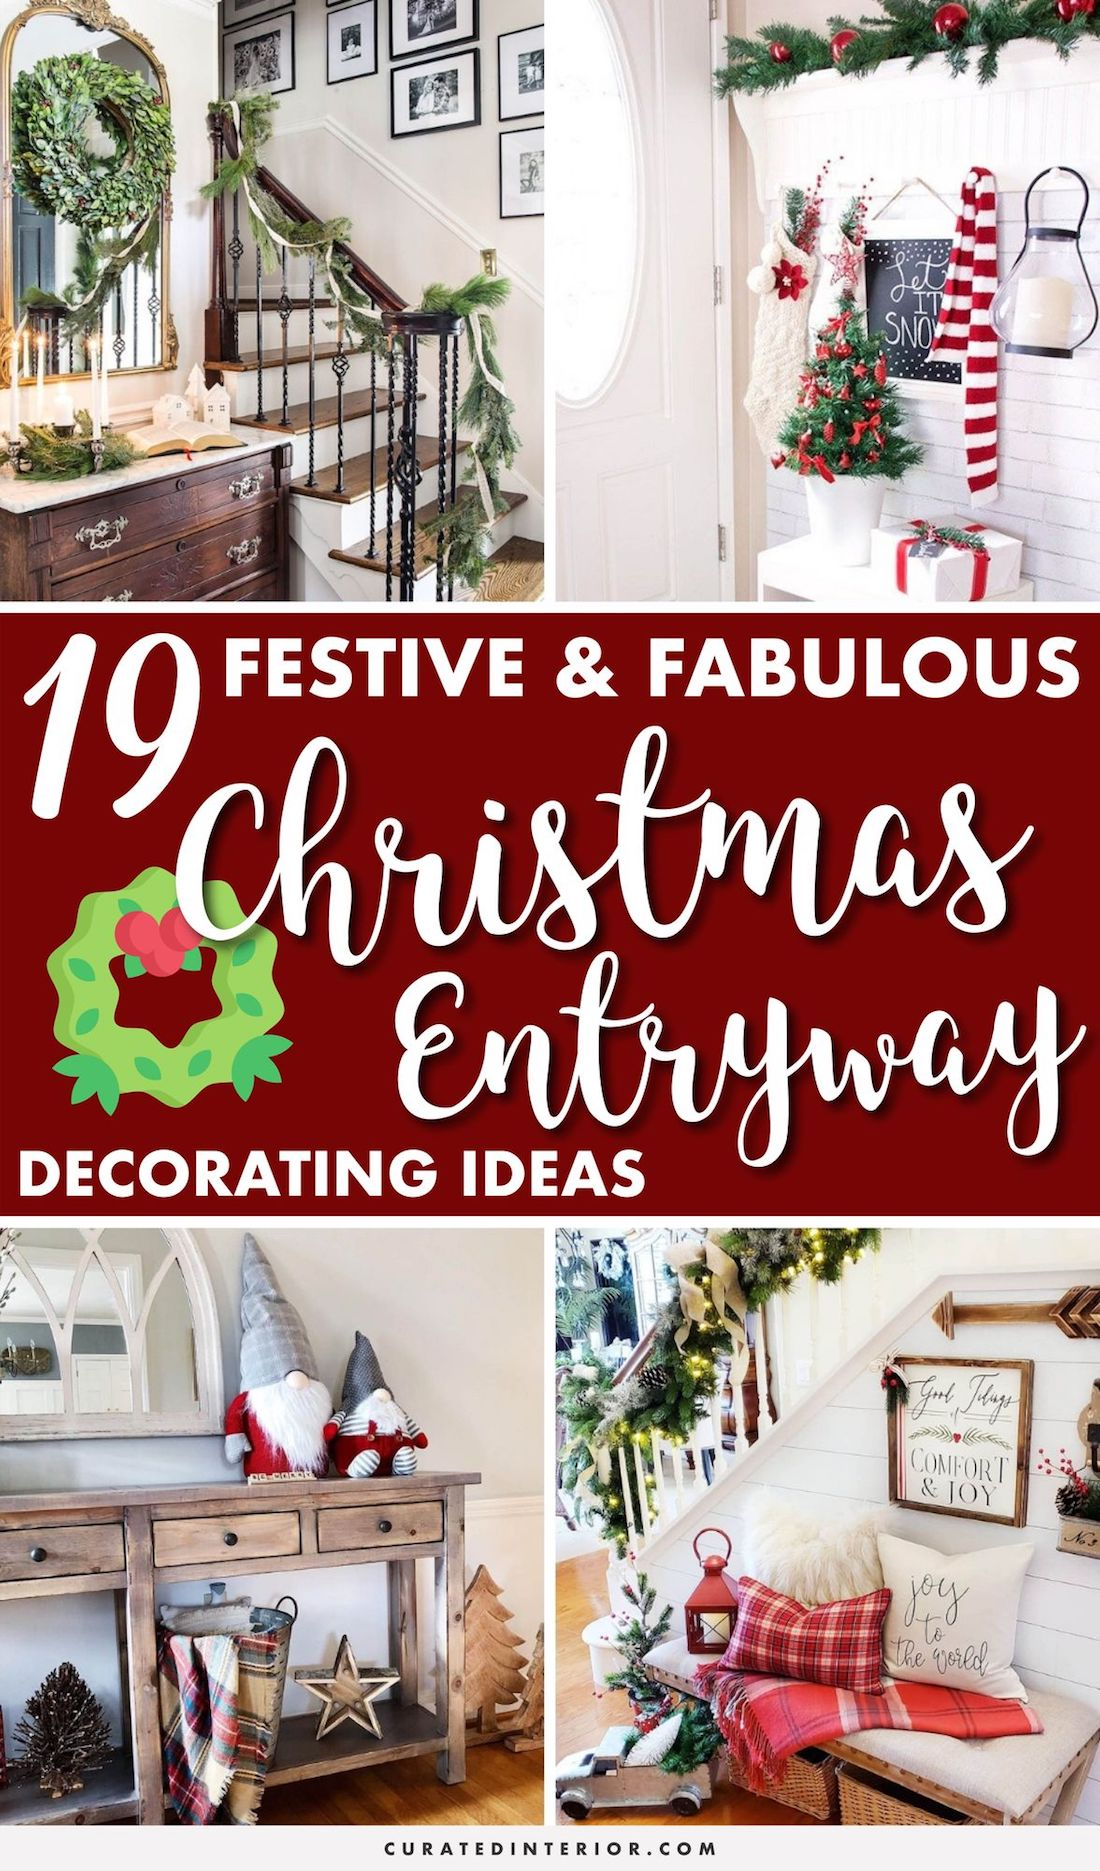 19 Festive Christmas Entryway Decorating Ideas #ChristmasDecor #Entryways #ChristmasHome